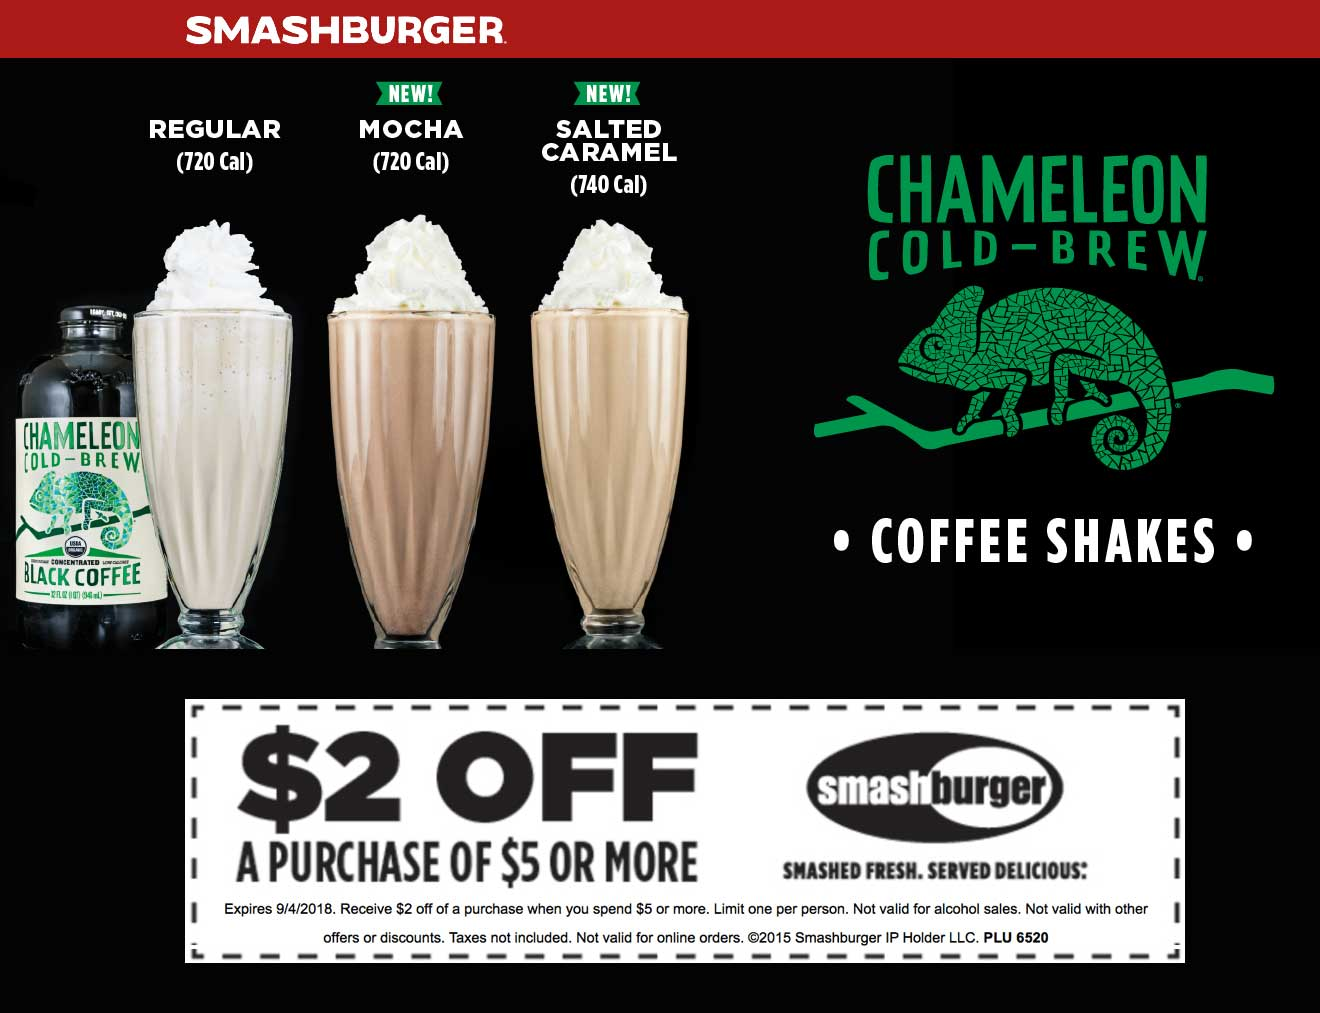 Smashburger Coupon May 2020 $2 off $5 at Smashburger restaurants